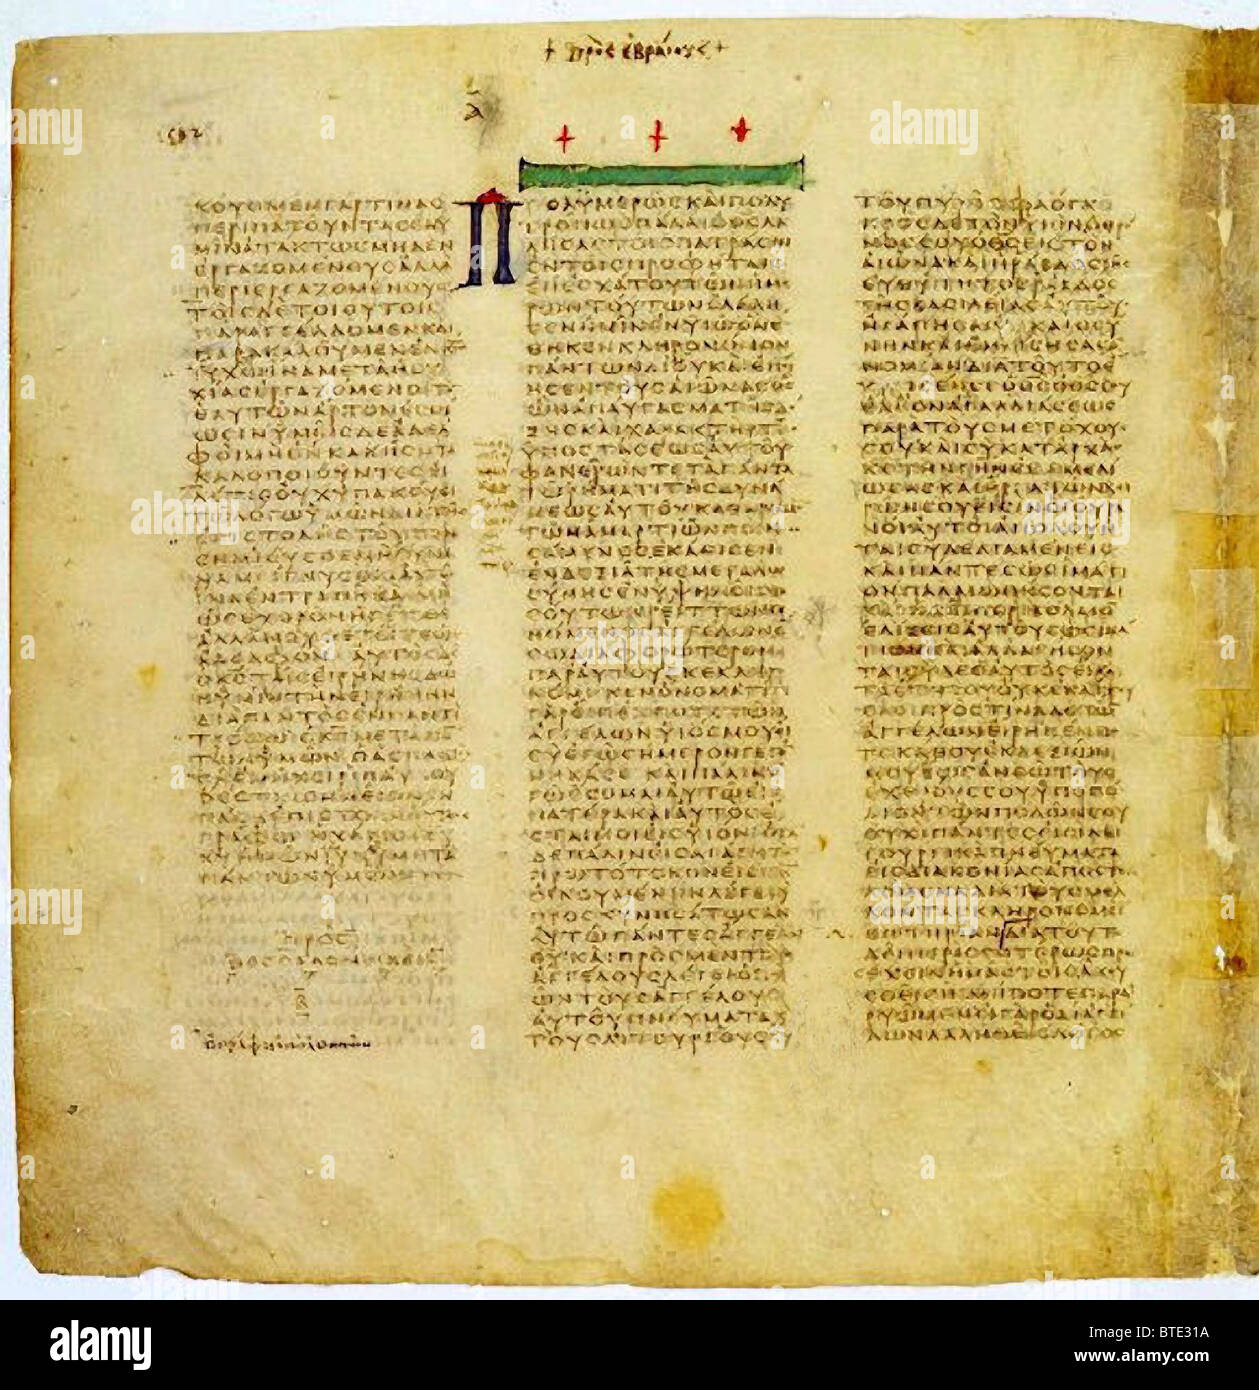 5396. Codex Sinaiticus is a 4th century manuscript of the Greek Bible, written between 330–350. Originally it contained - Stock Image